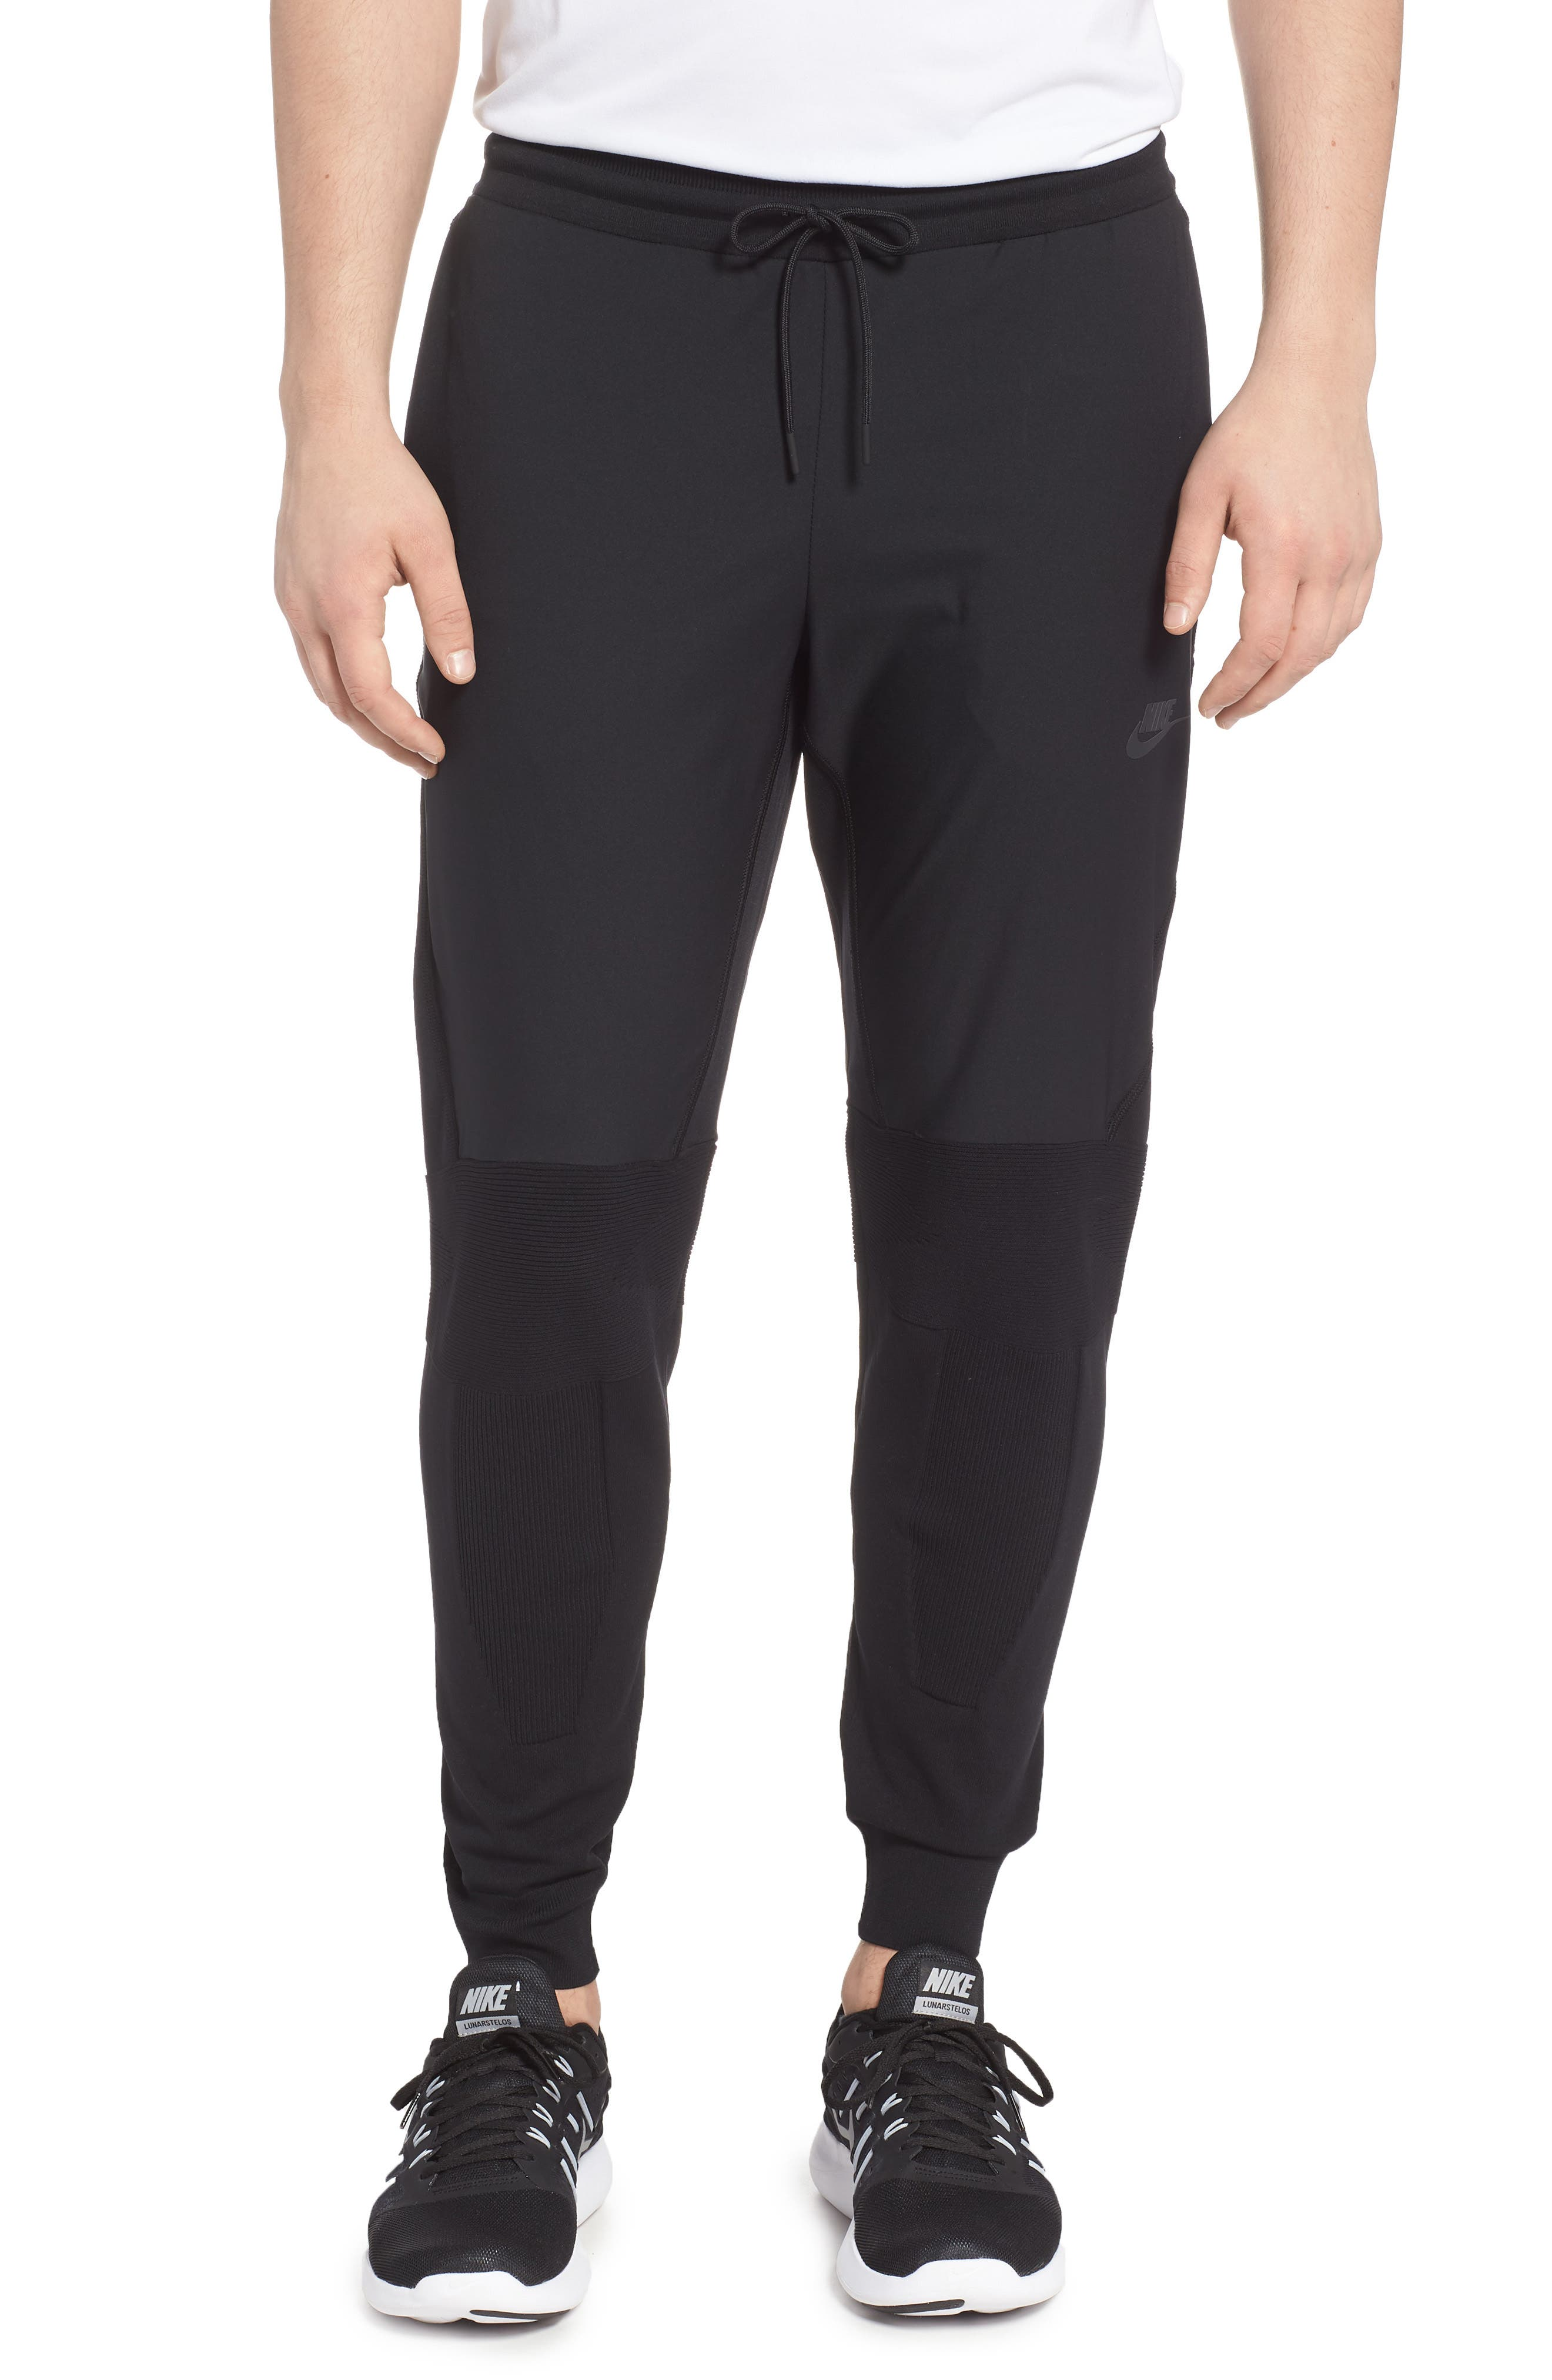 NSW Tech Knit Jogger Pants,                             Main thumbnail 1, color,                             010